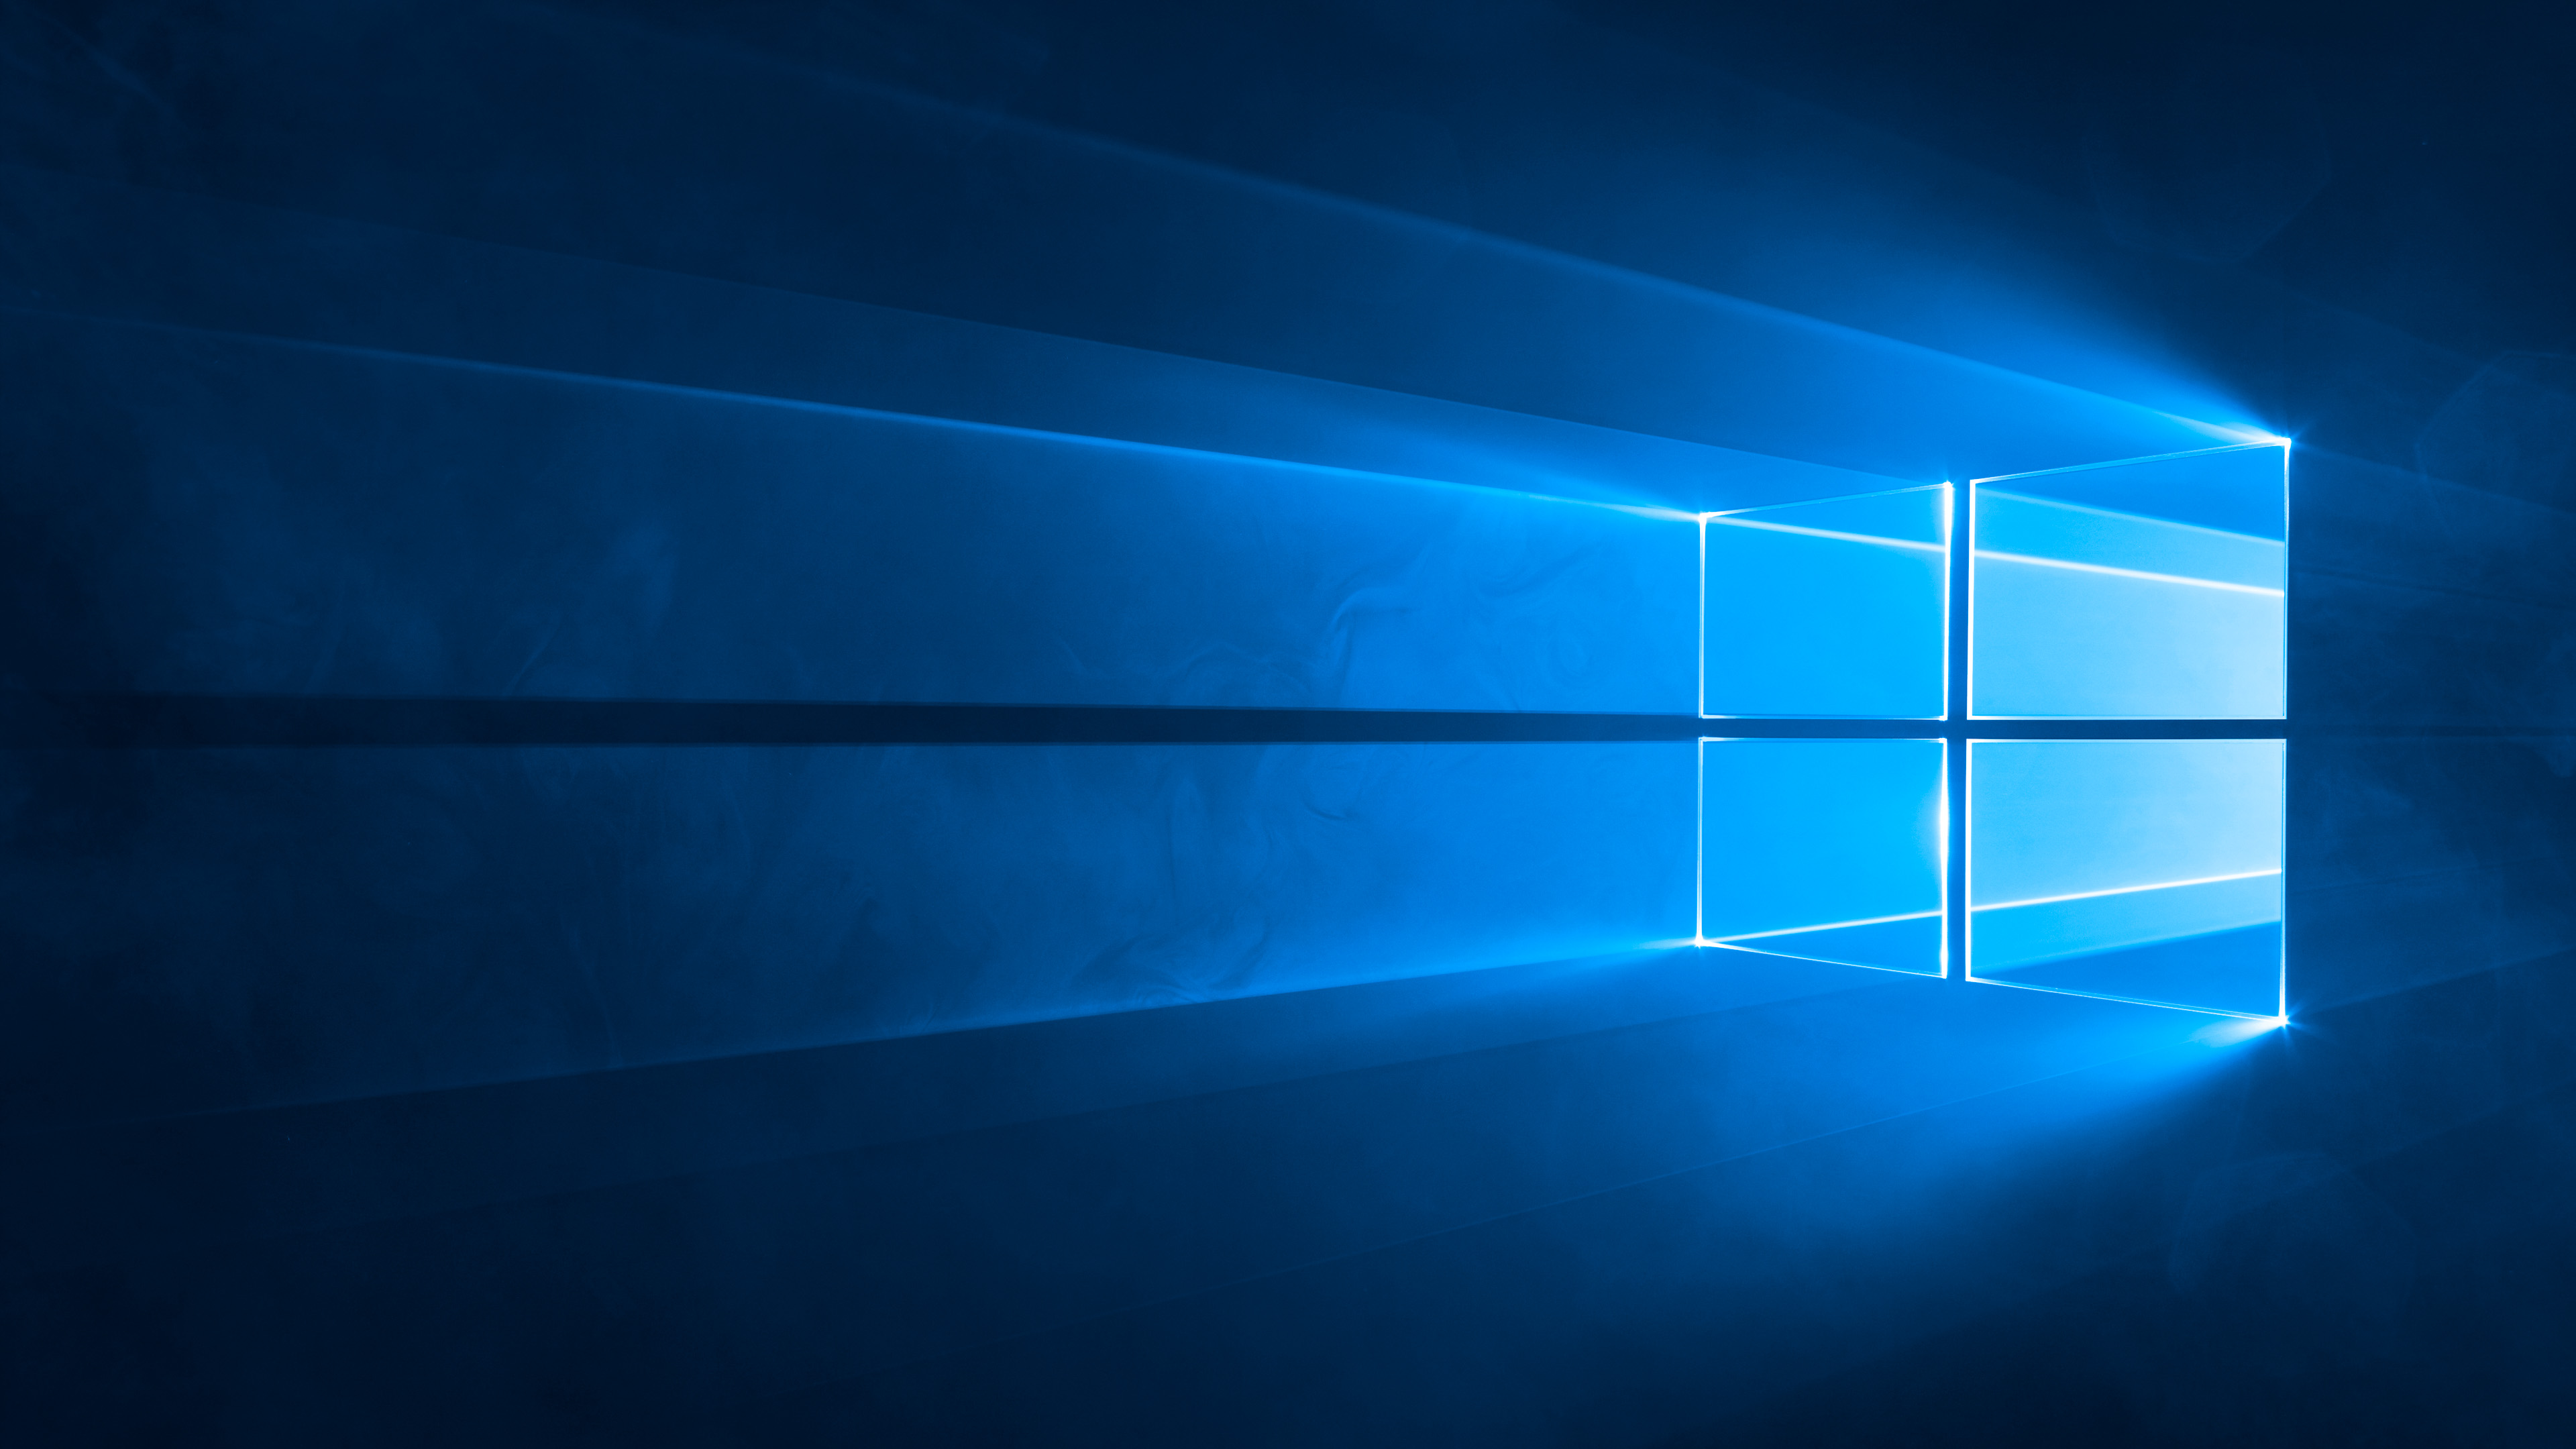 Download the stock Windows 10 wallpapers for your tablet or ...